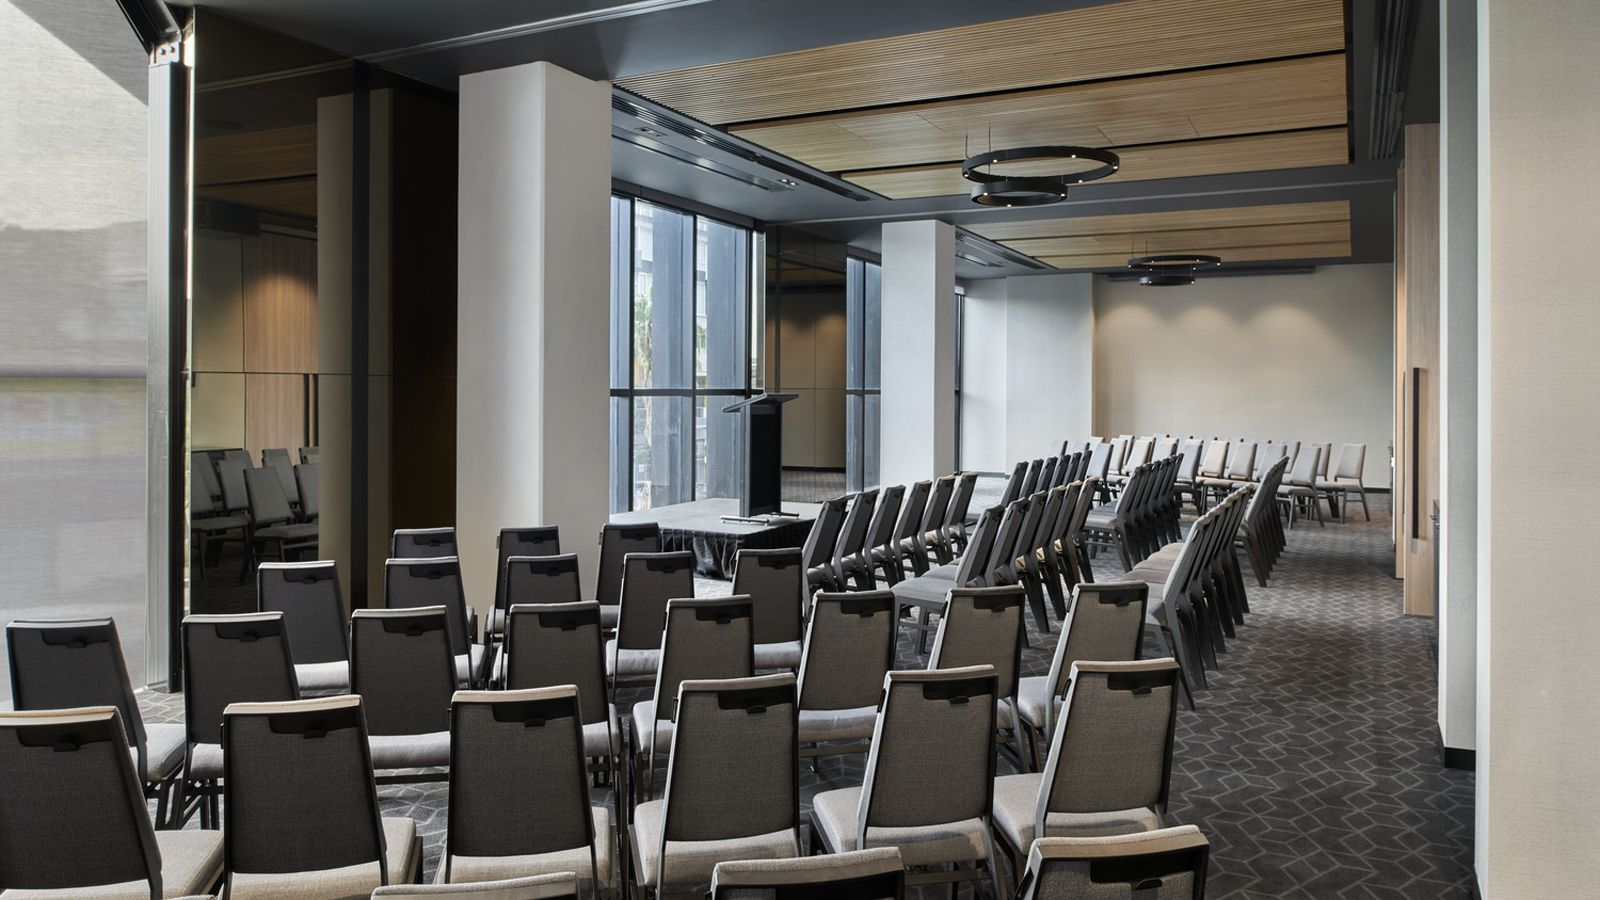 Docklands Meeting Room - Theatre